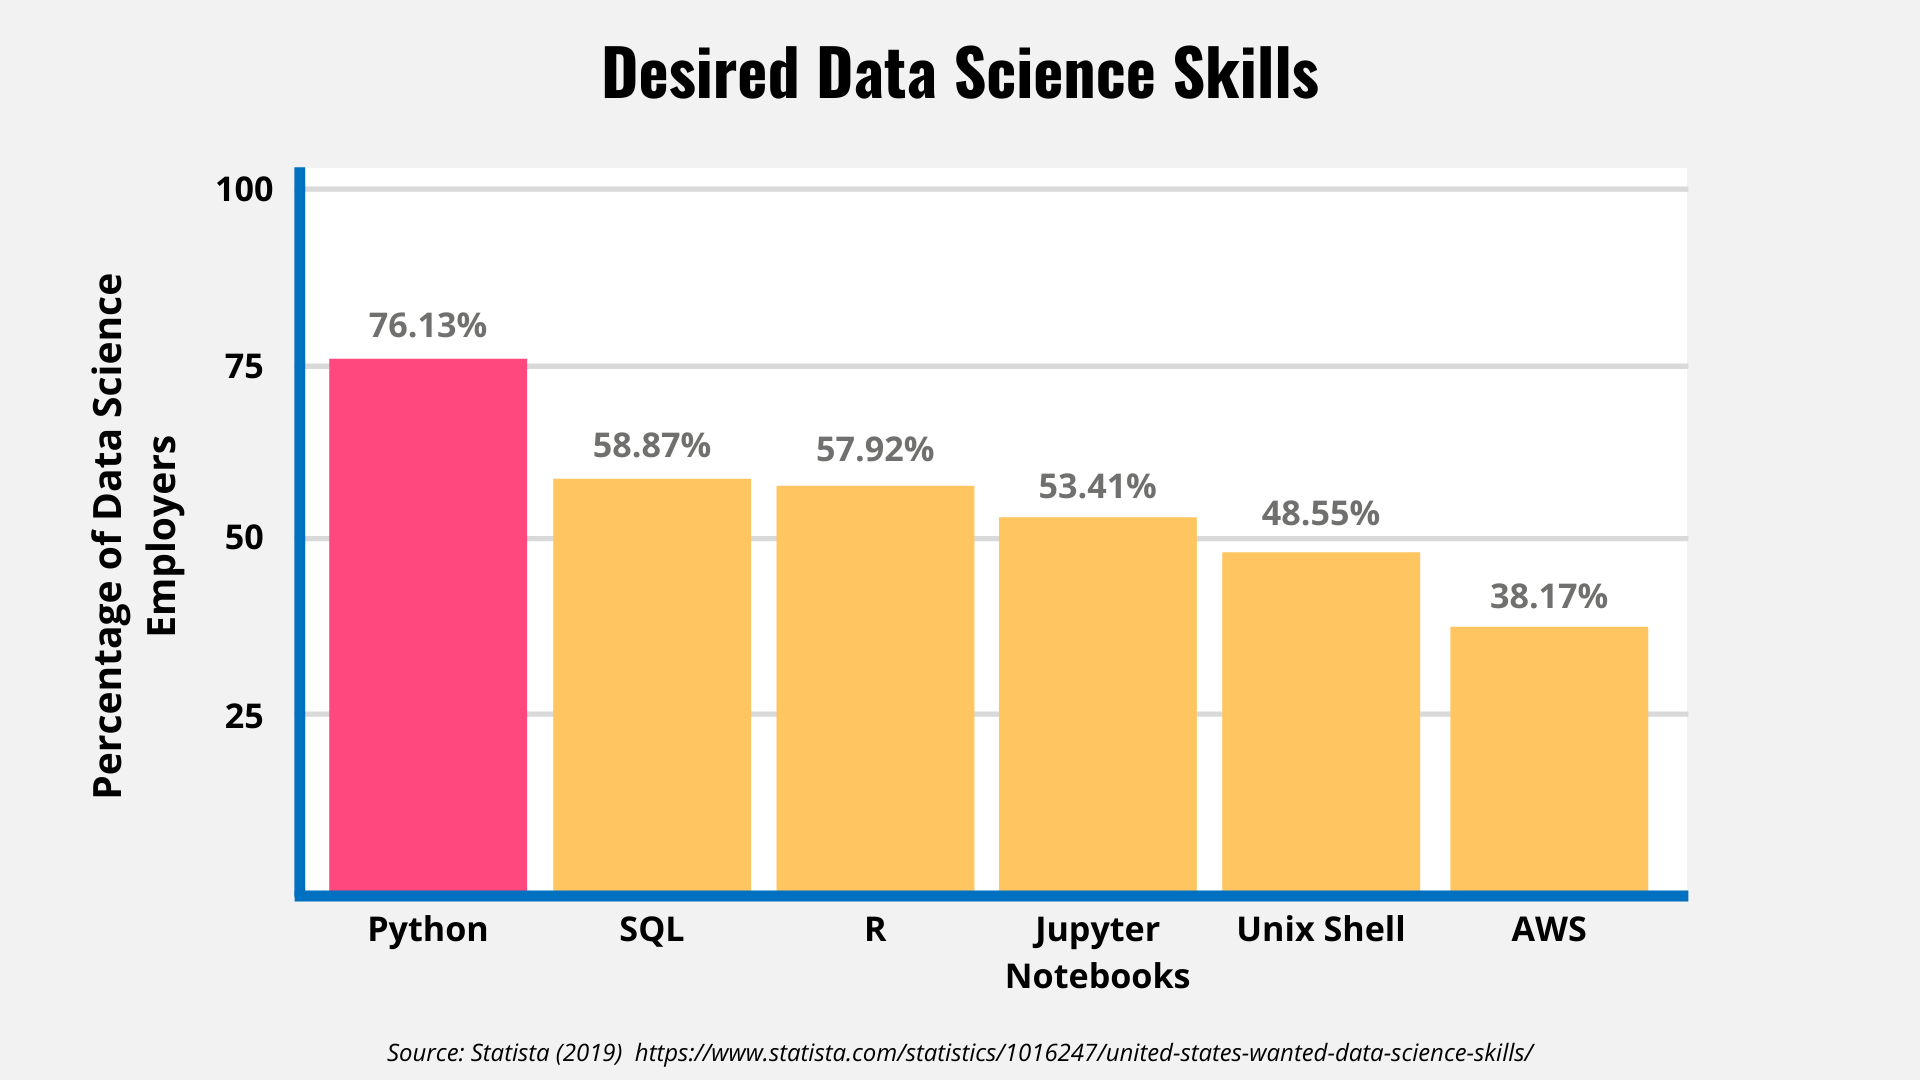 Bar graph displaying desired skills for data science